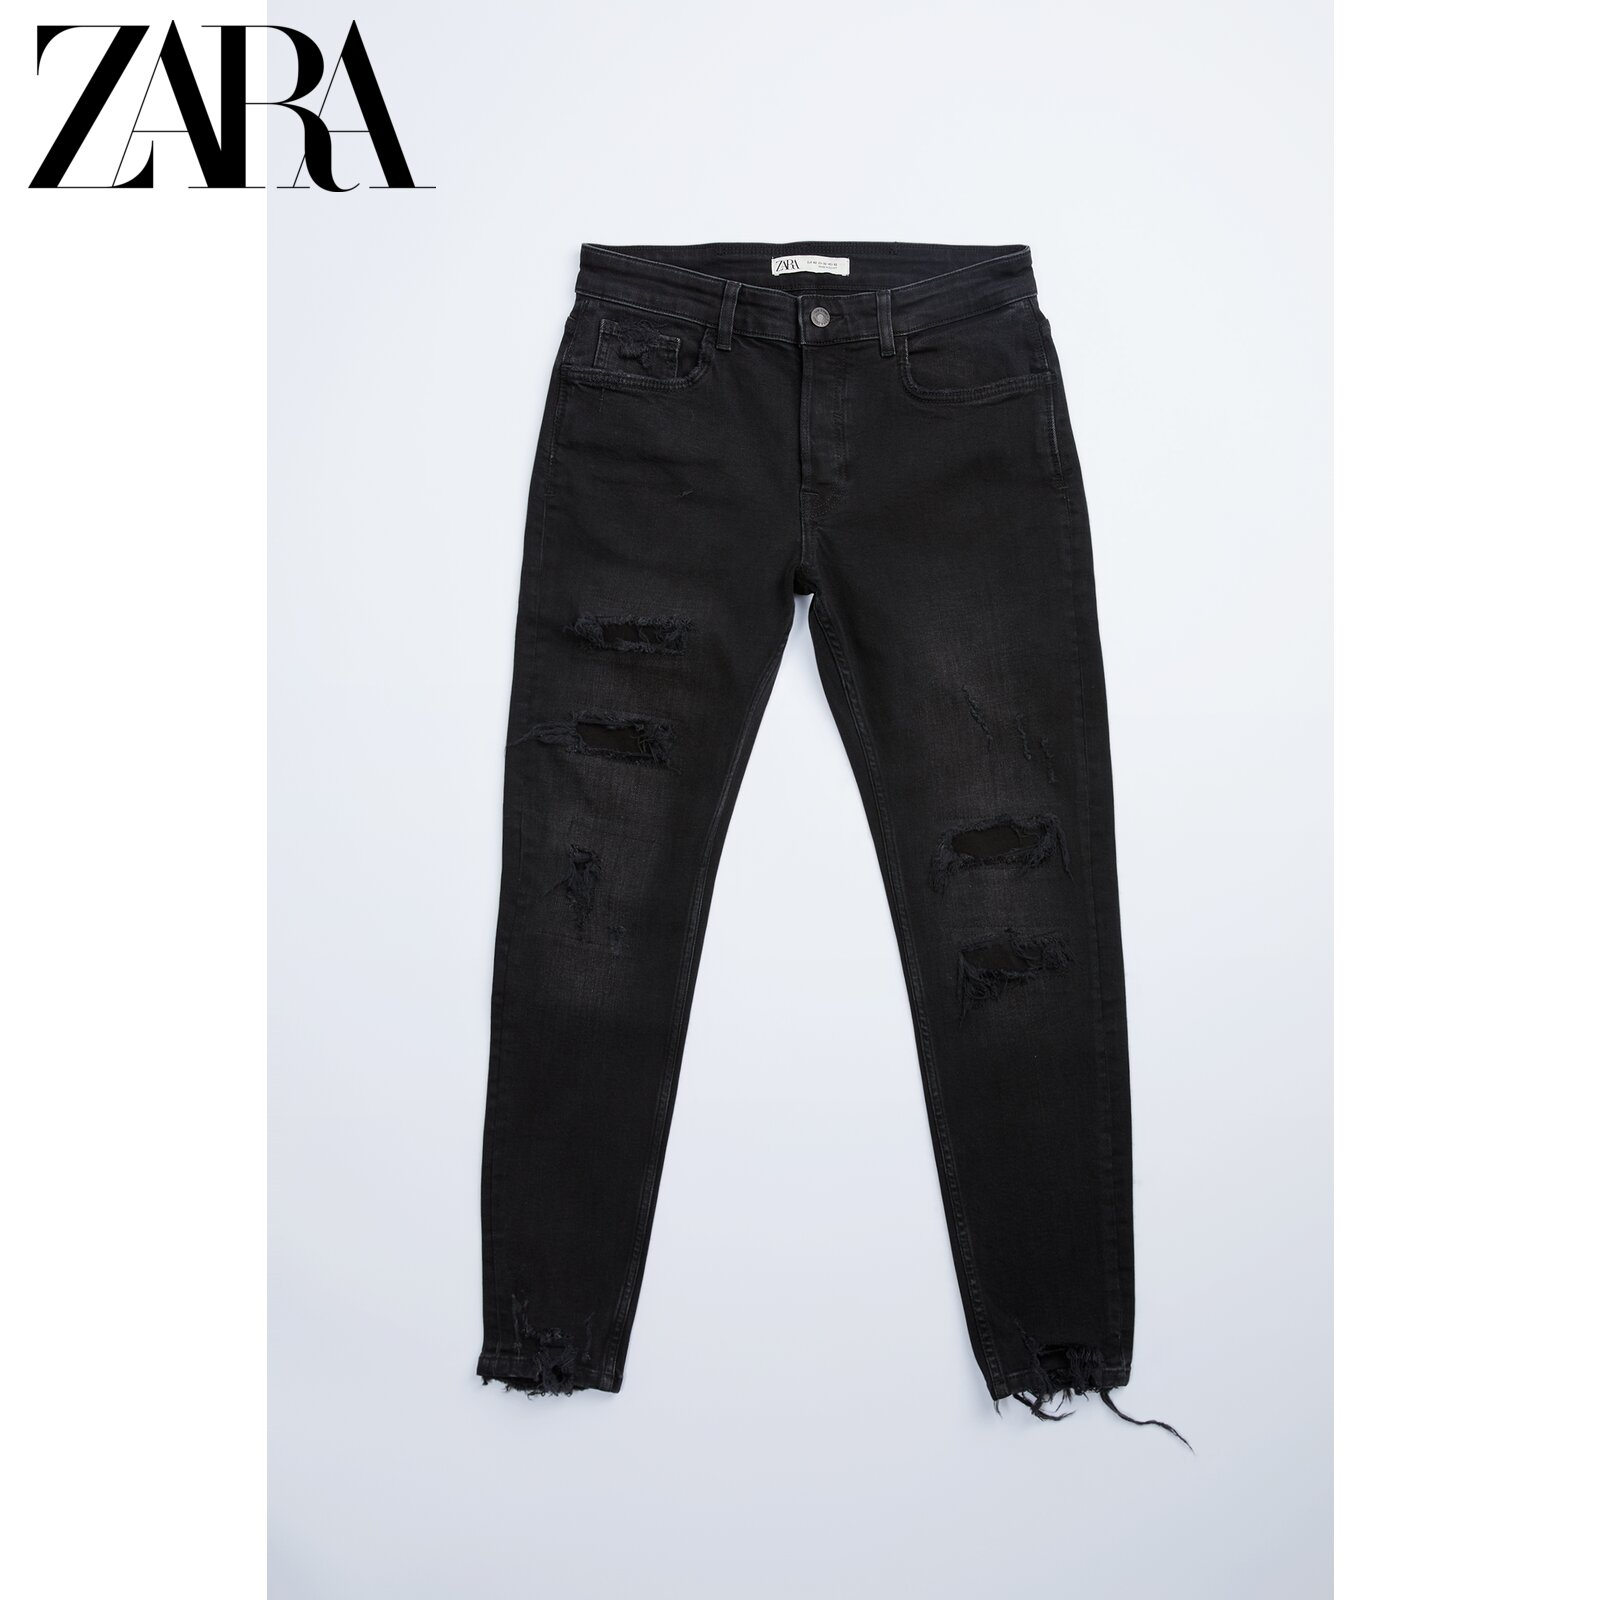 Zara new men's black jeans with ripped skinny feet 06045330800